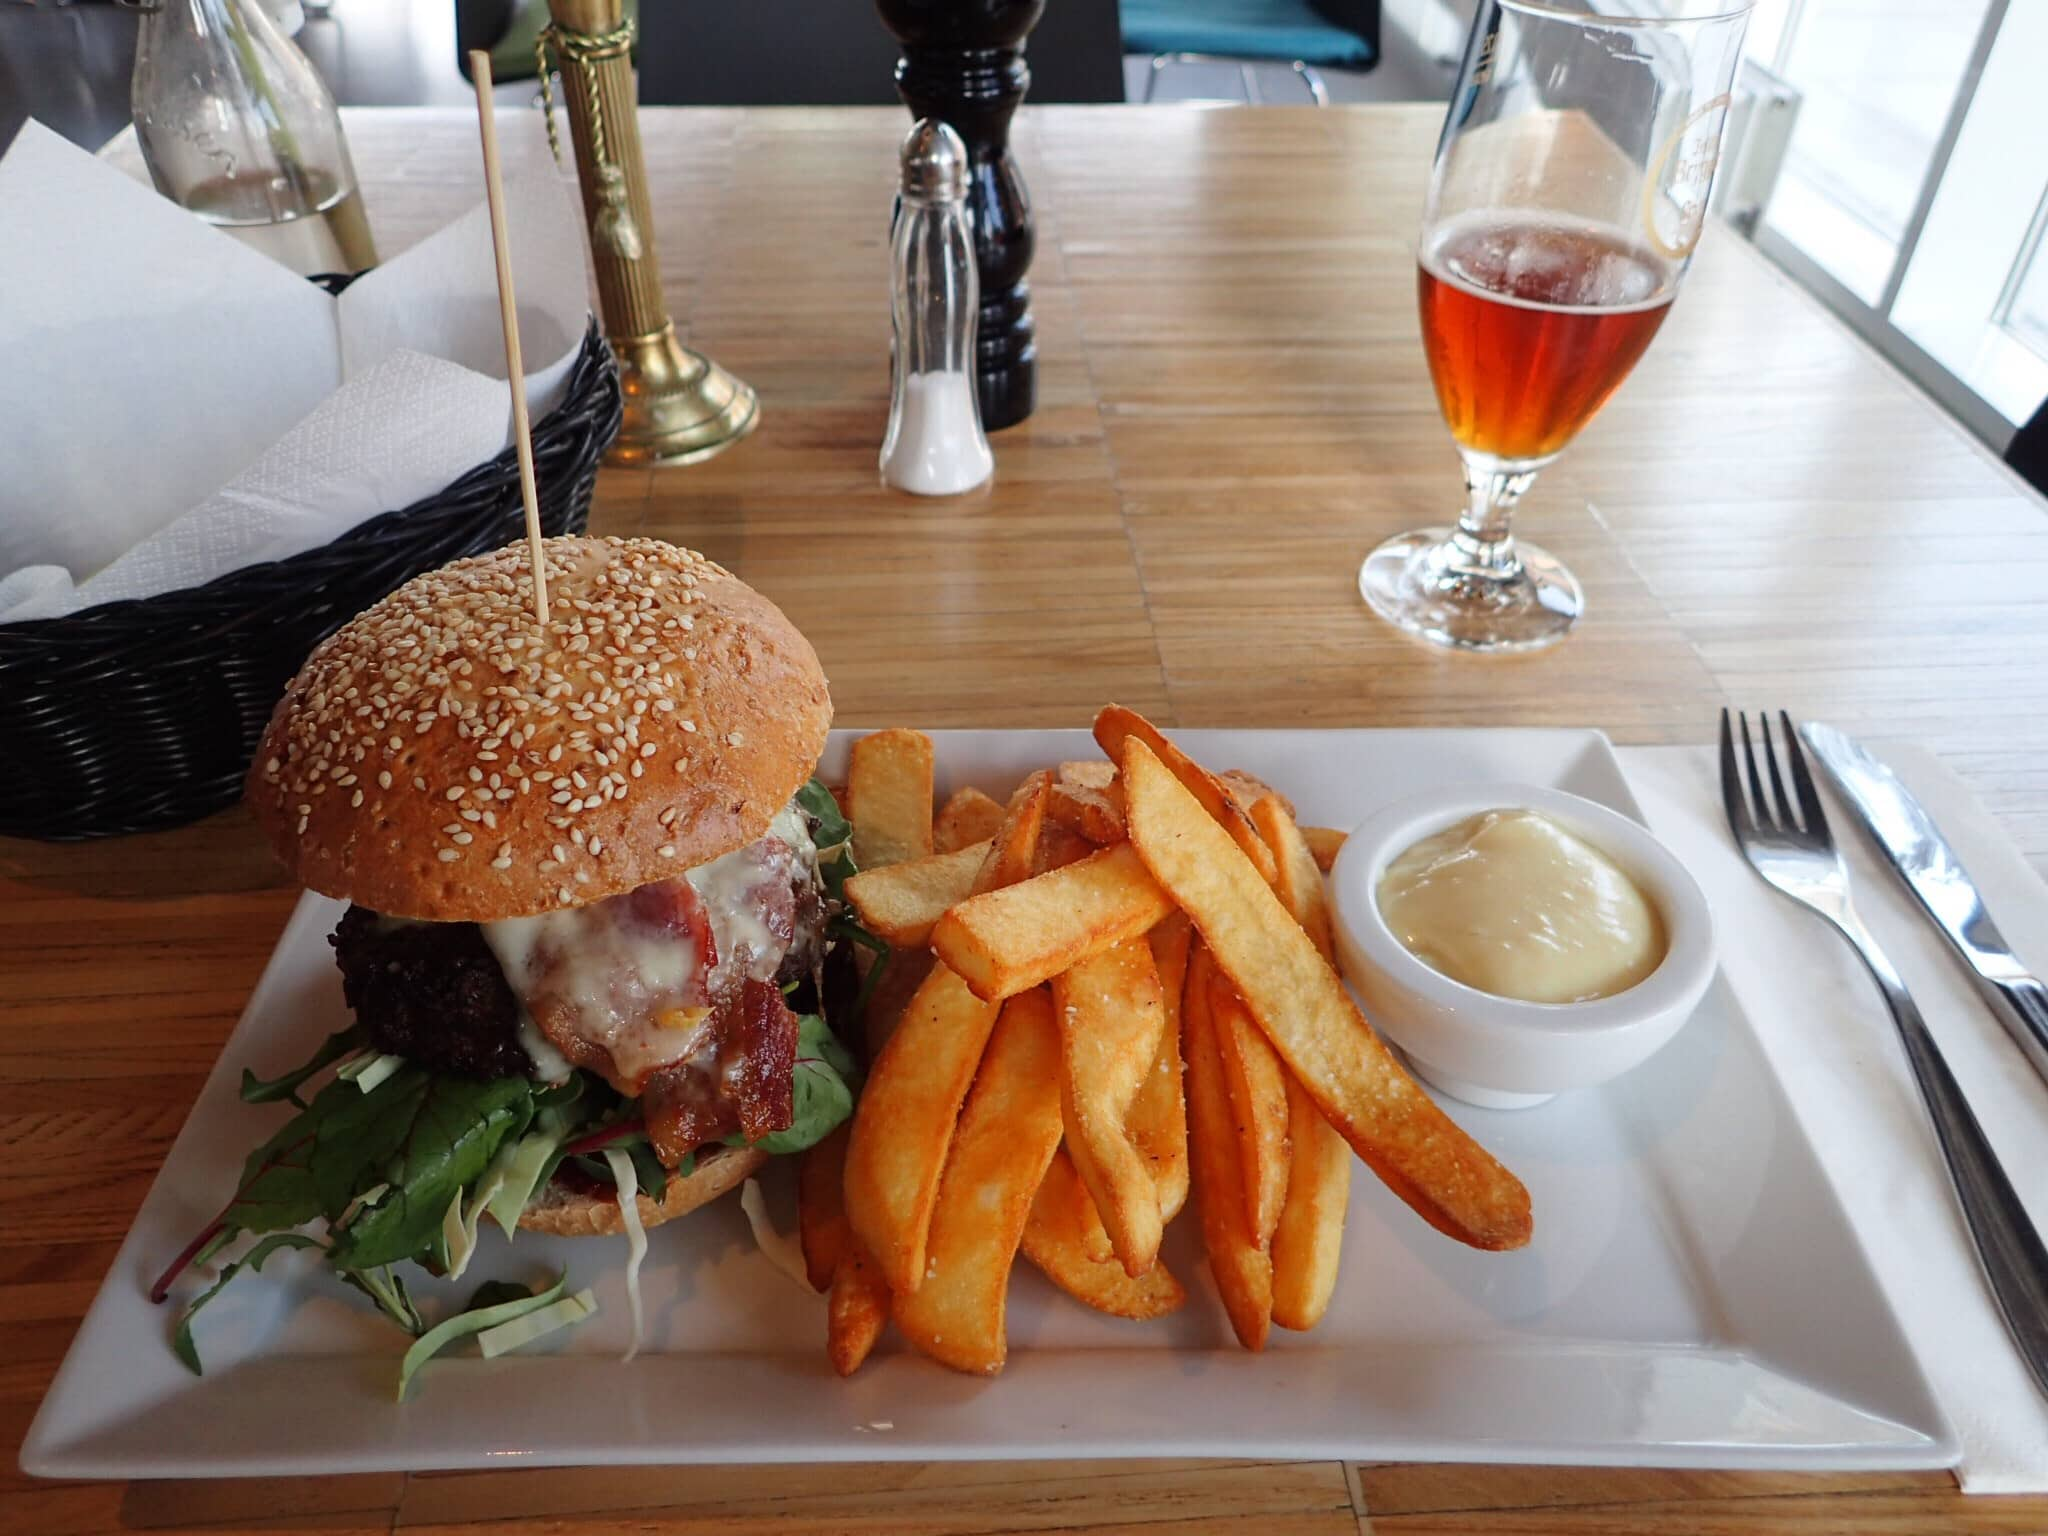 Burger and fries at the Boyens Cafe in Jelling